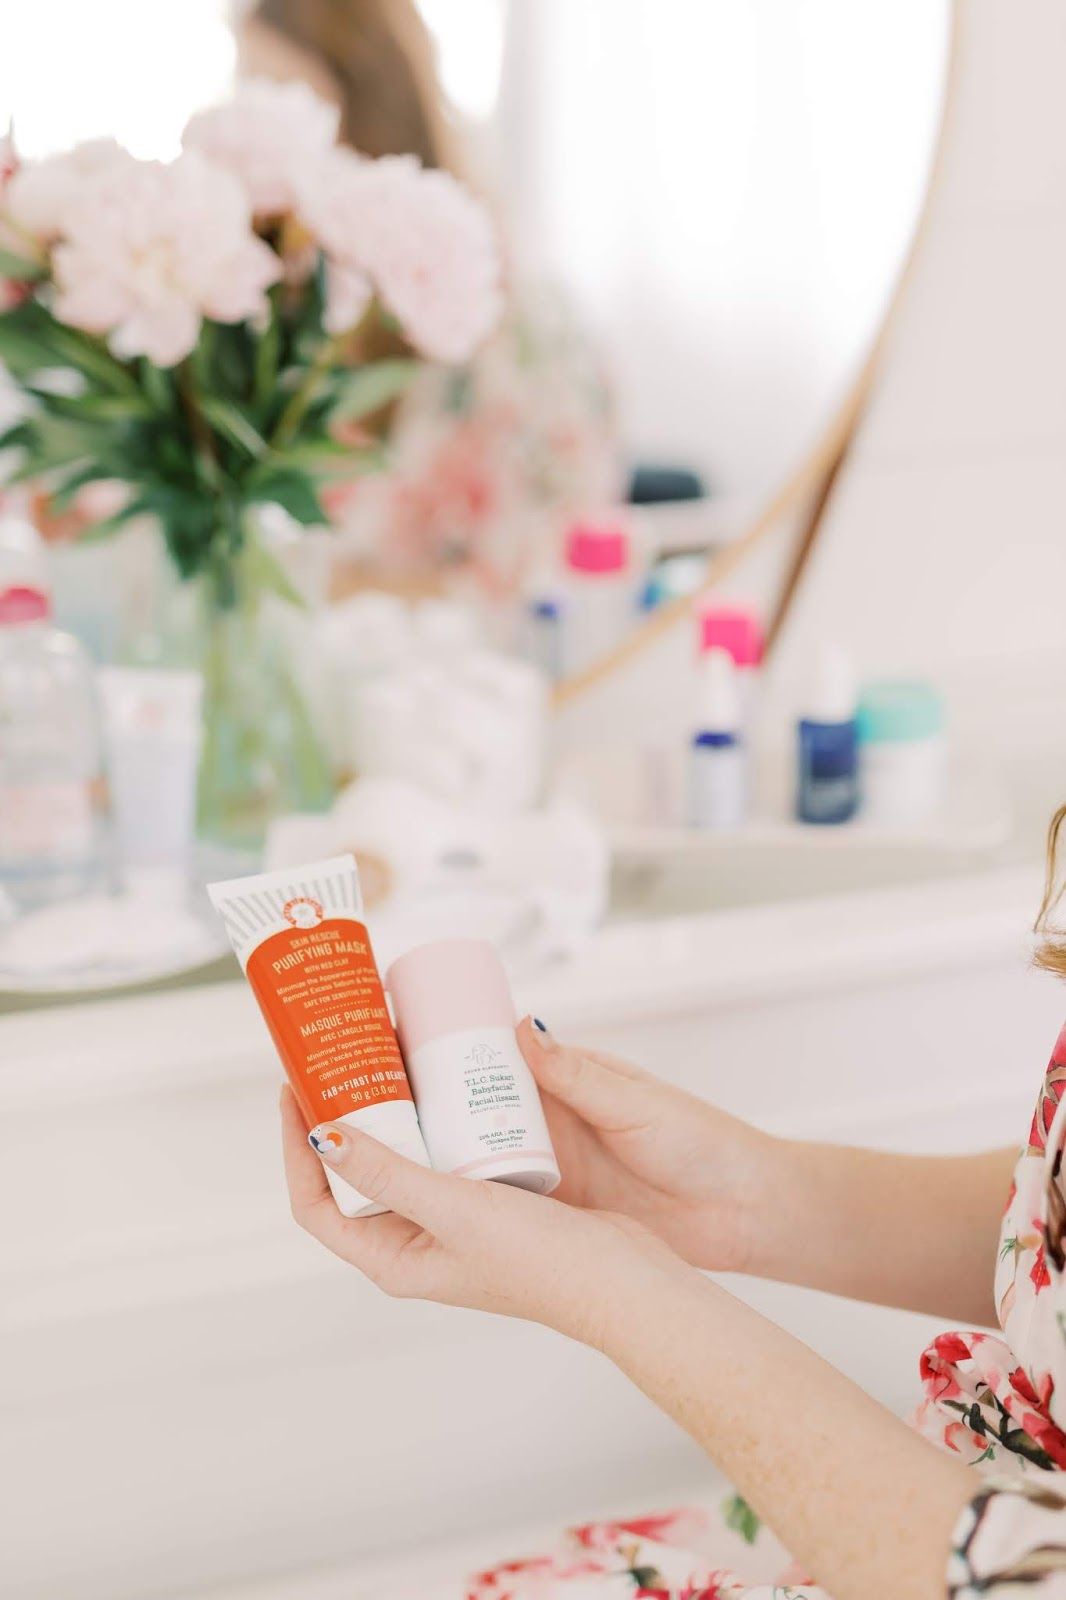 Fight Acne in Your 20s With These 3 Products. Affordable by Amanda, Tampa Beauty Blogger. Mario Badescu Drying Lotion for Acne. Jan Marini Age Intervention Duality Lotion. Drunk Elephant Sukari Baby Facial.